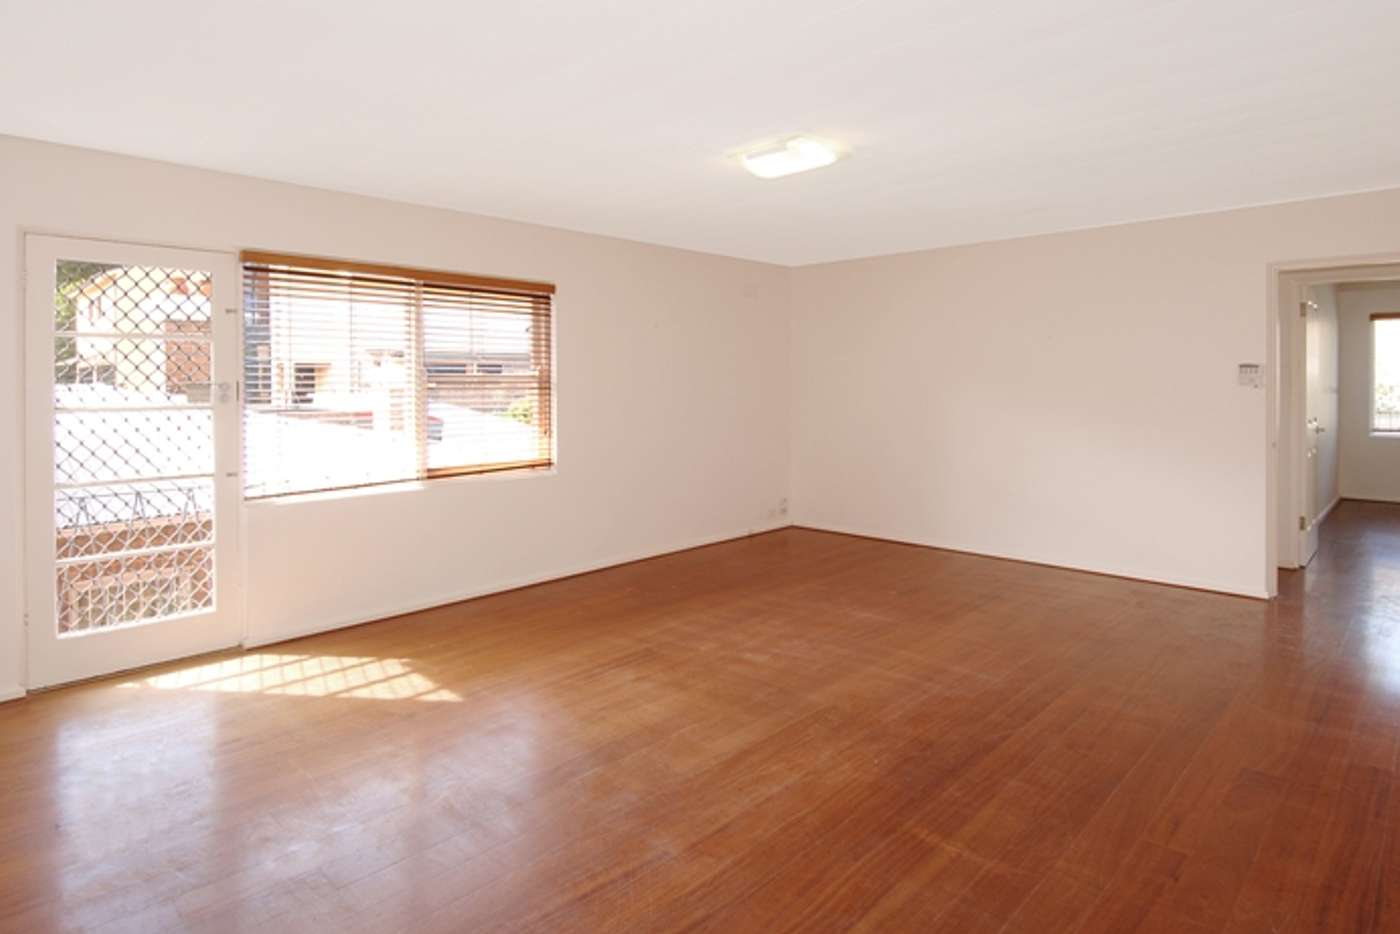 Main view of Homely apartment listing, 4/30 Stephen Street, Randwick NSW 2031